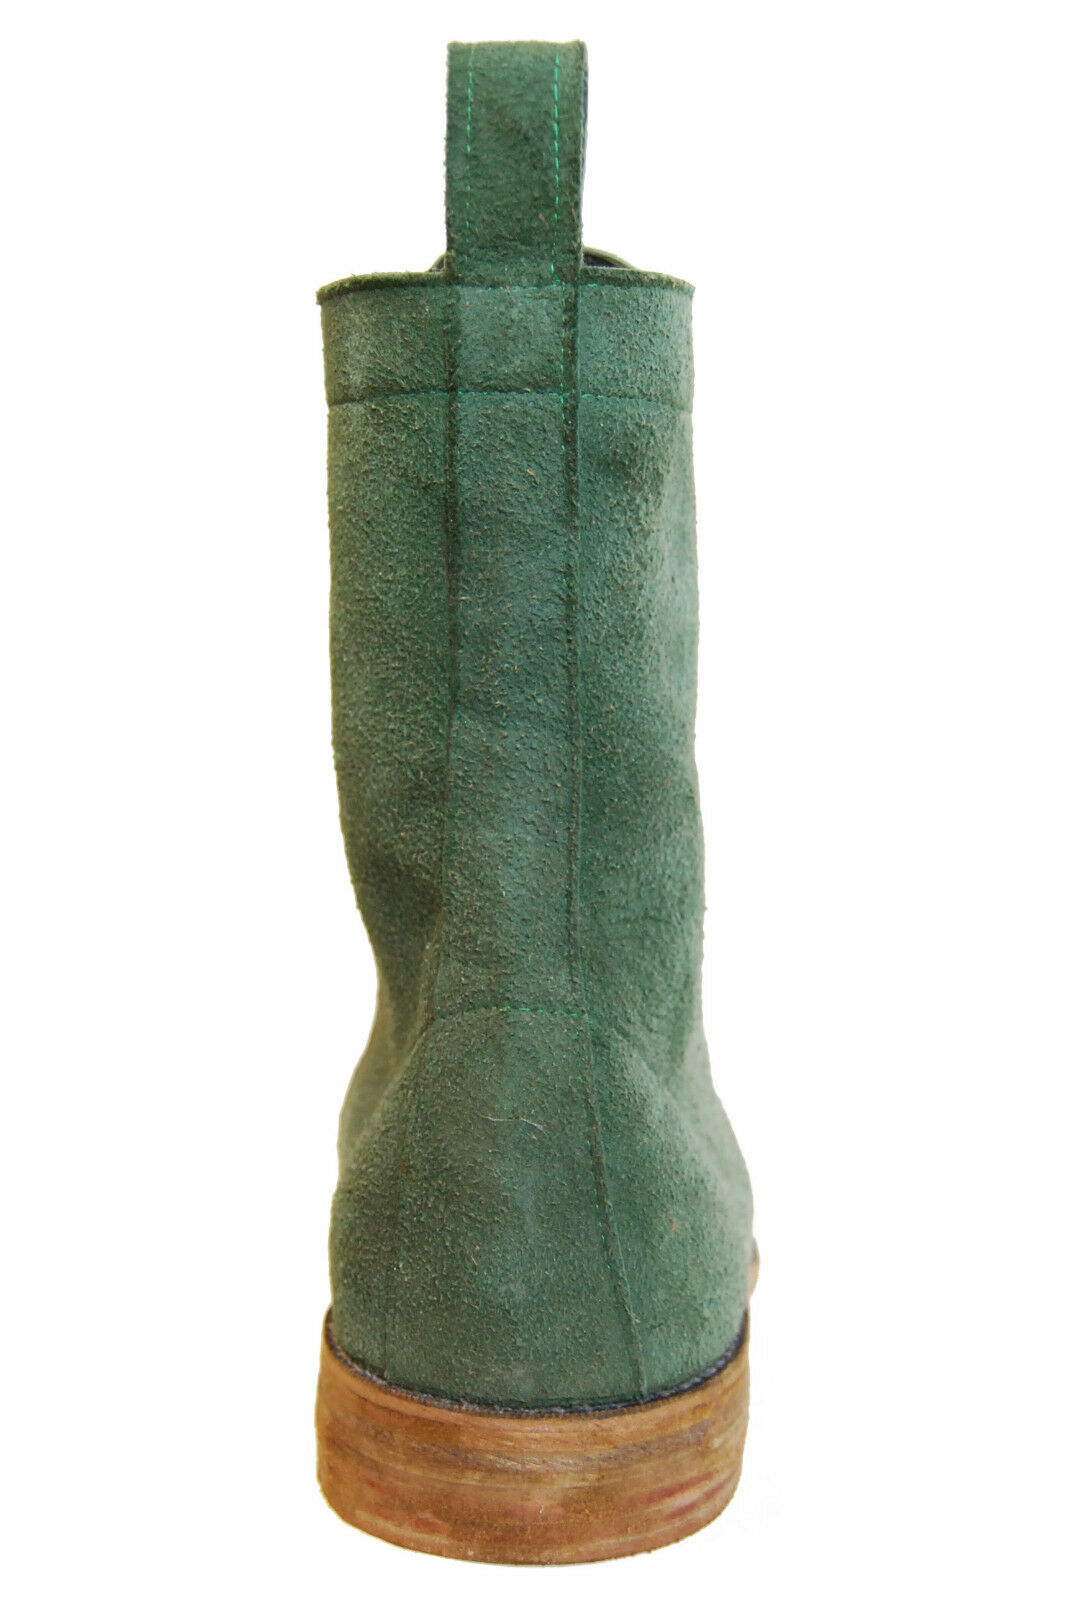 ANDRE No. 1 verde Suede Popeye stivali, US 9.5, EUR EUR EUR 43.5  NEW, Handmade in USA< 3b7976